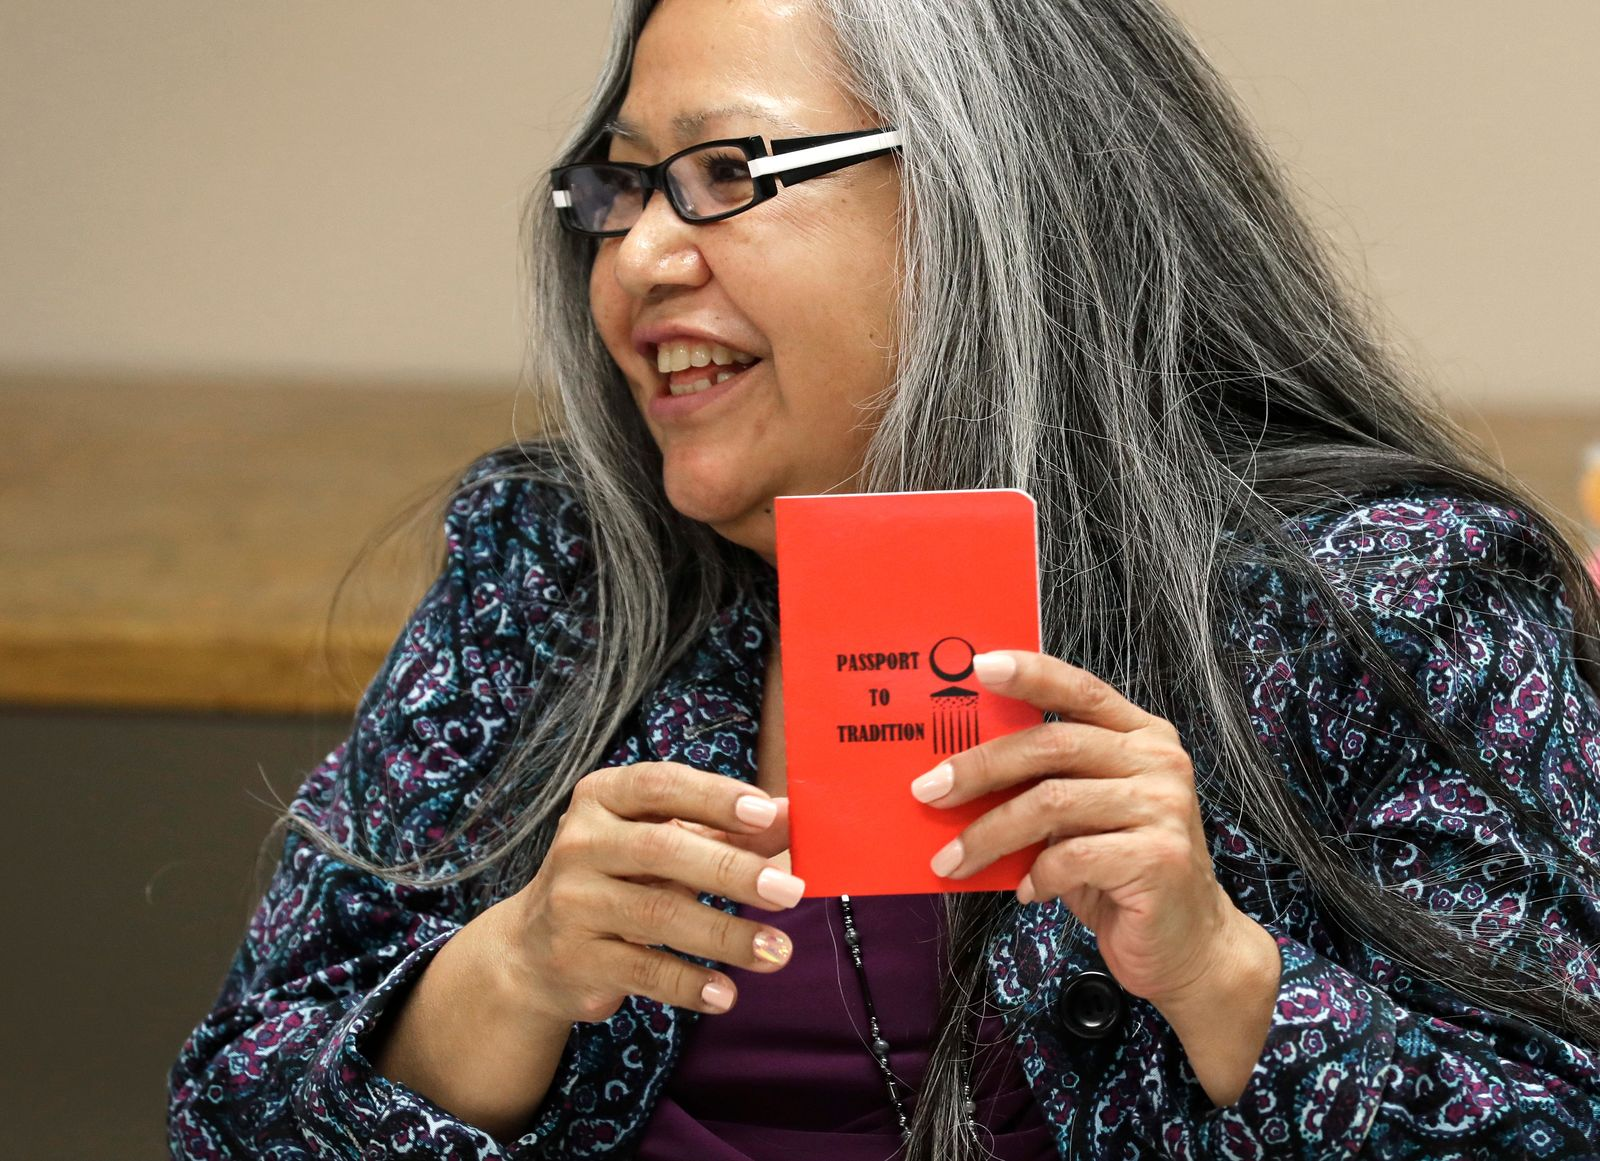 "Annette Squetimkin-Anquoe, a member of the Colville Indian tribe and the Chief Traditional Health Officer at the Urban Indian Health Institute in Seattle, holds a booklet with a cover that reads ""Passport to Tradition,"" Friday, Jan. 11, 2019, during a talking circle meeting to discuss the practice of traditional Indian medicine with employees of the Seattle Indian Health Board.   Fallout from the federal government shutdown is hurting hundreds of Native American tribes and entities that serve them. The pain is especially deep in tribal communities with high rates of poverty and unemployment, and where one person often supports an extended family.  (AP Photo/Ted S. Warren)"